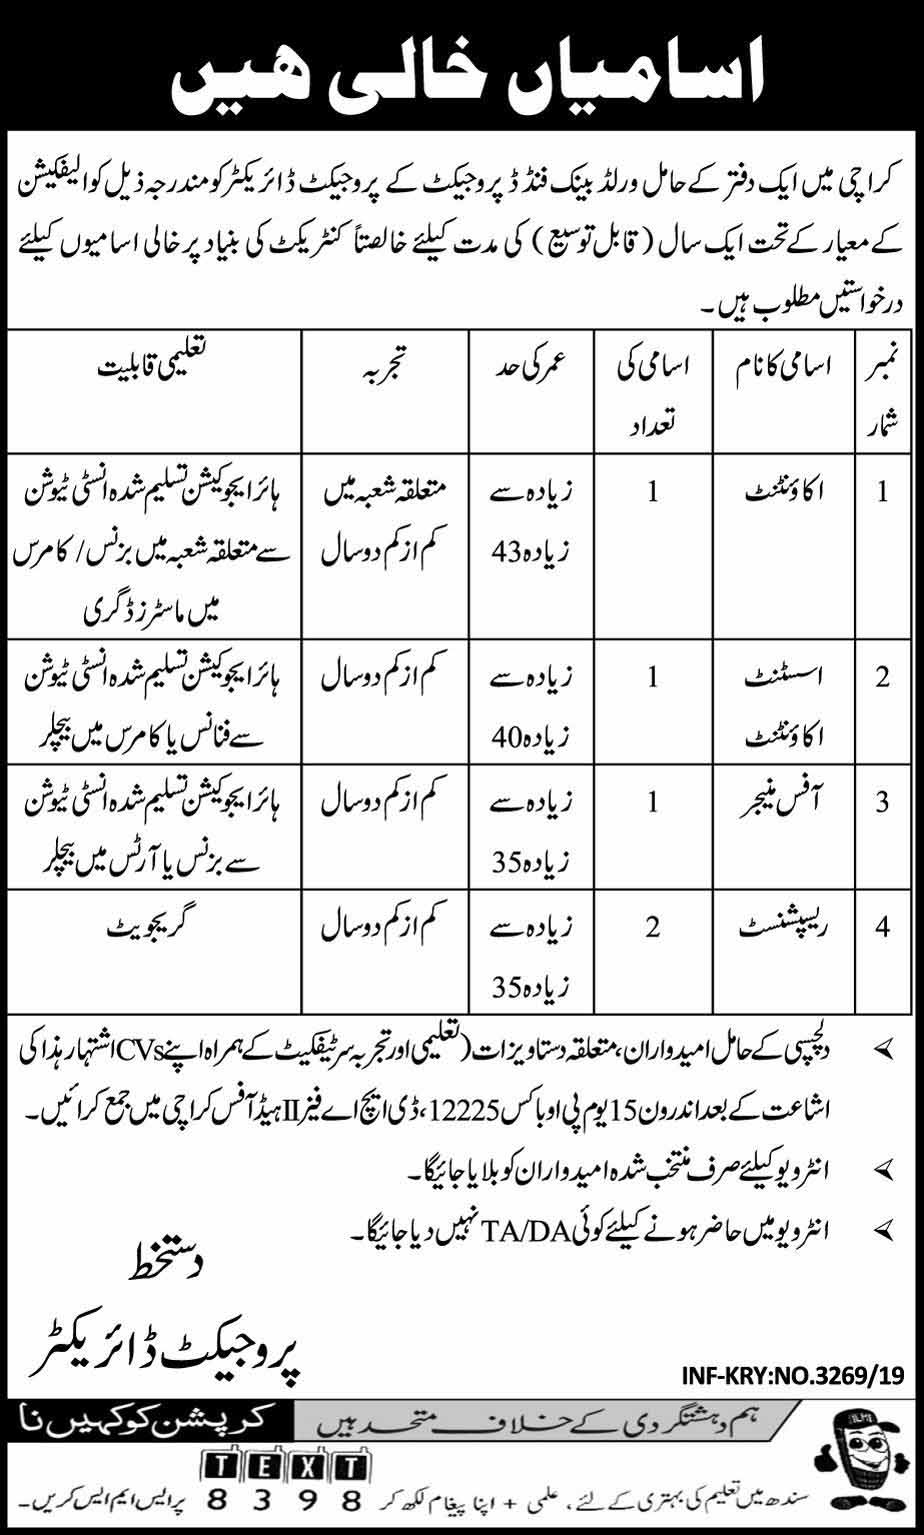 Accountant, Assistant Accountant, Office Manager, Receptionist Jobs in Karachi